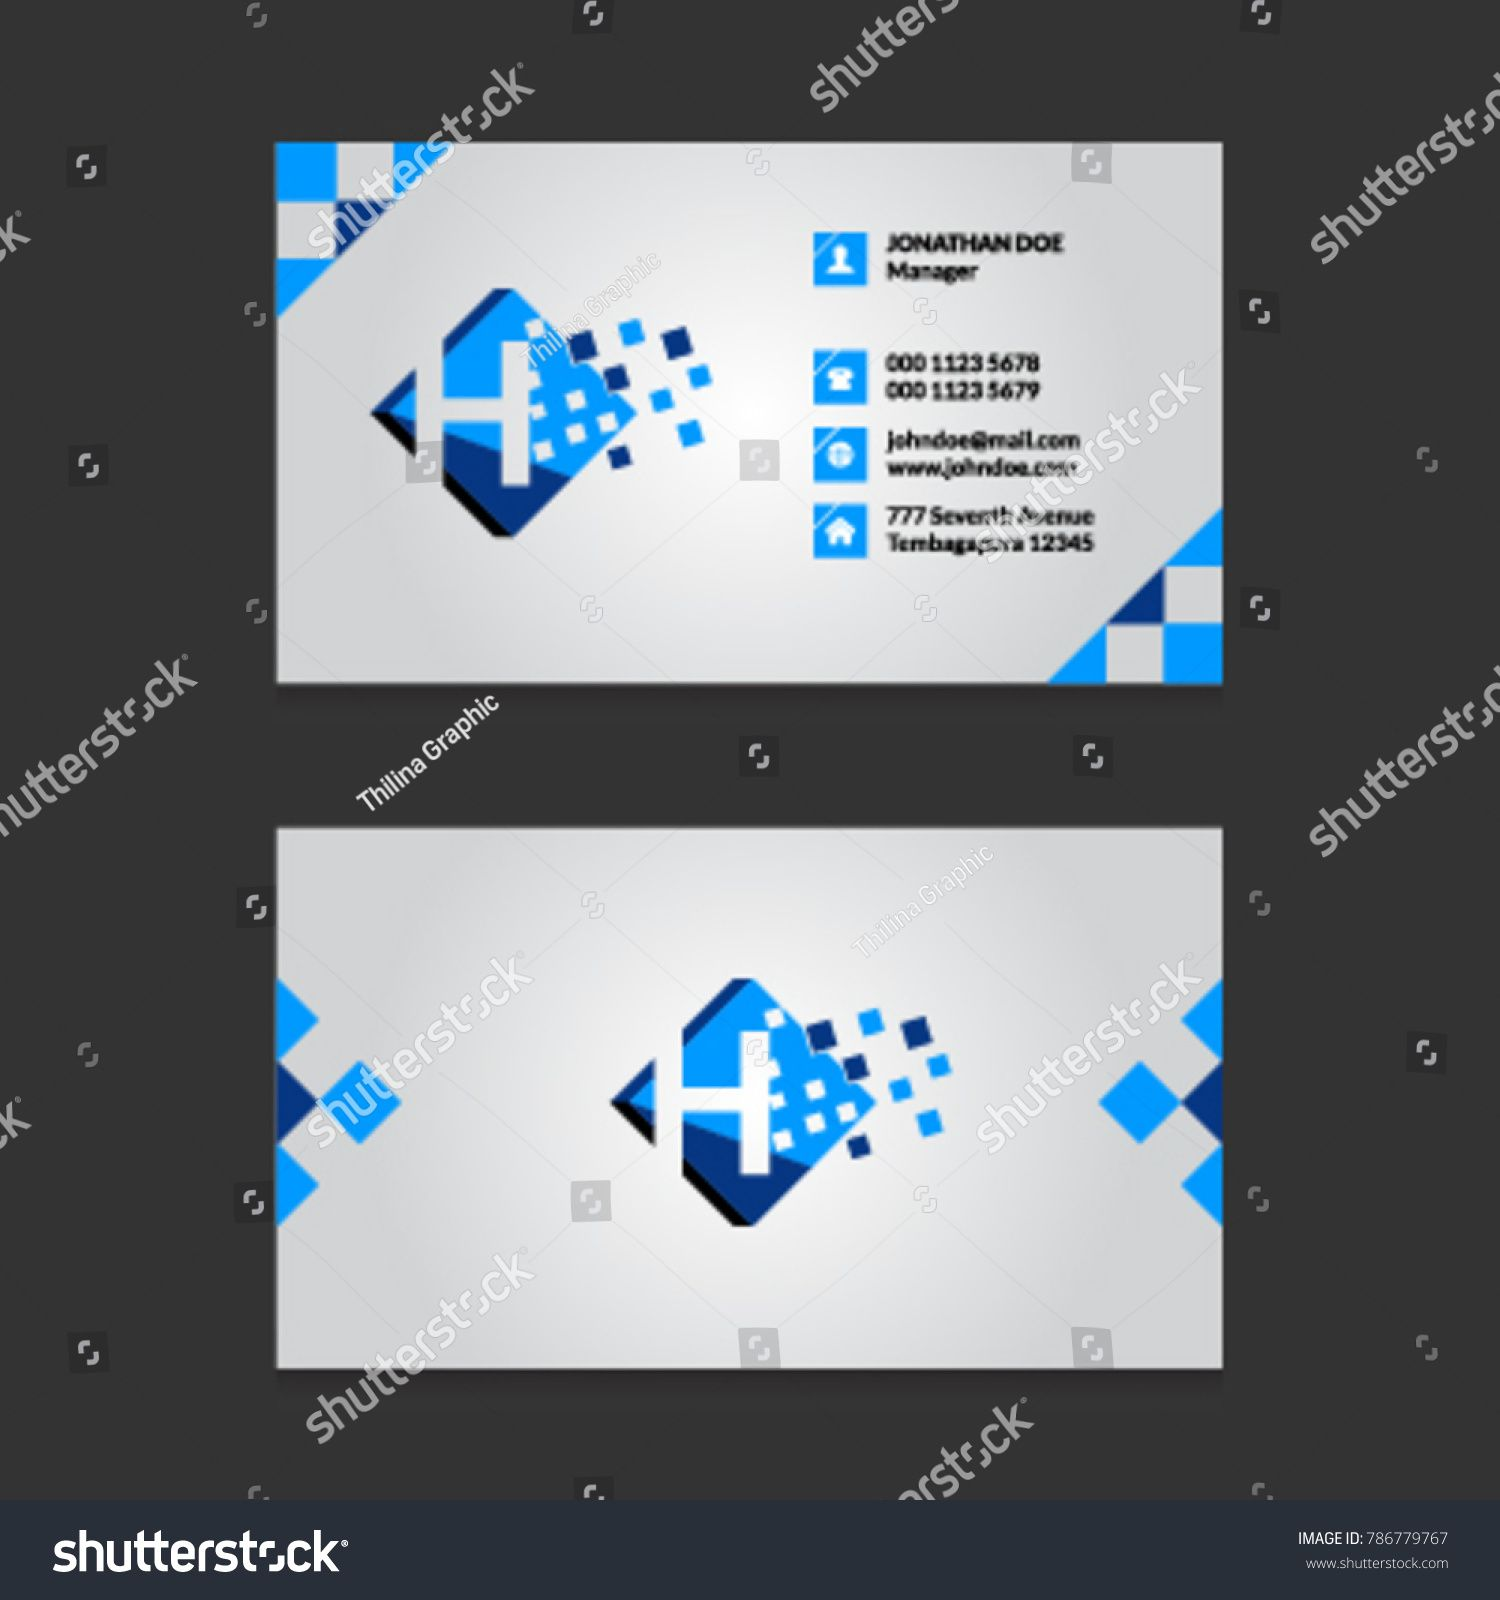 H Pixel Letter Logo with Modern Business Card Template